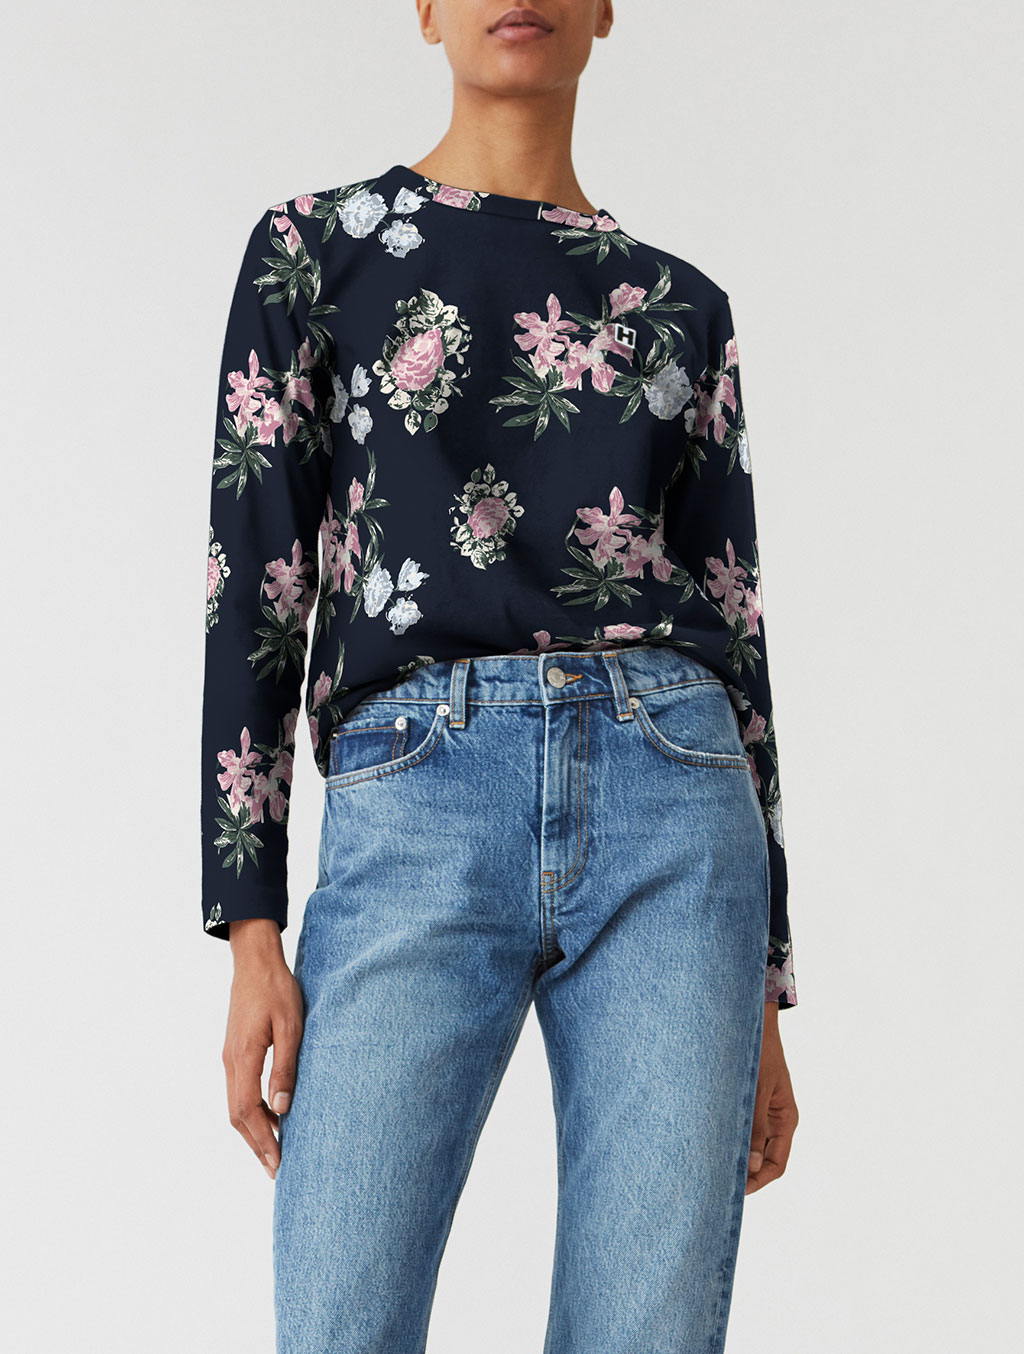 Model with modified sweatshirt - with added floral pattern